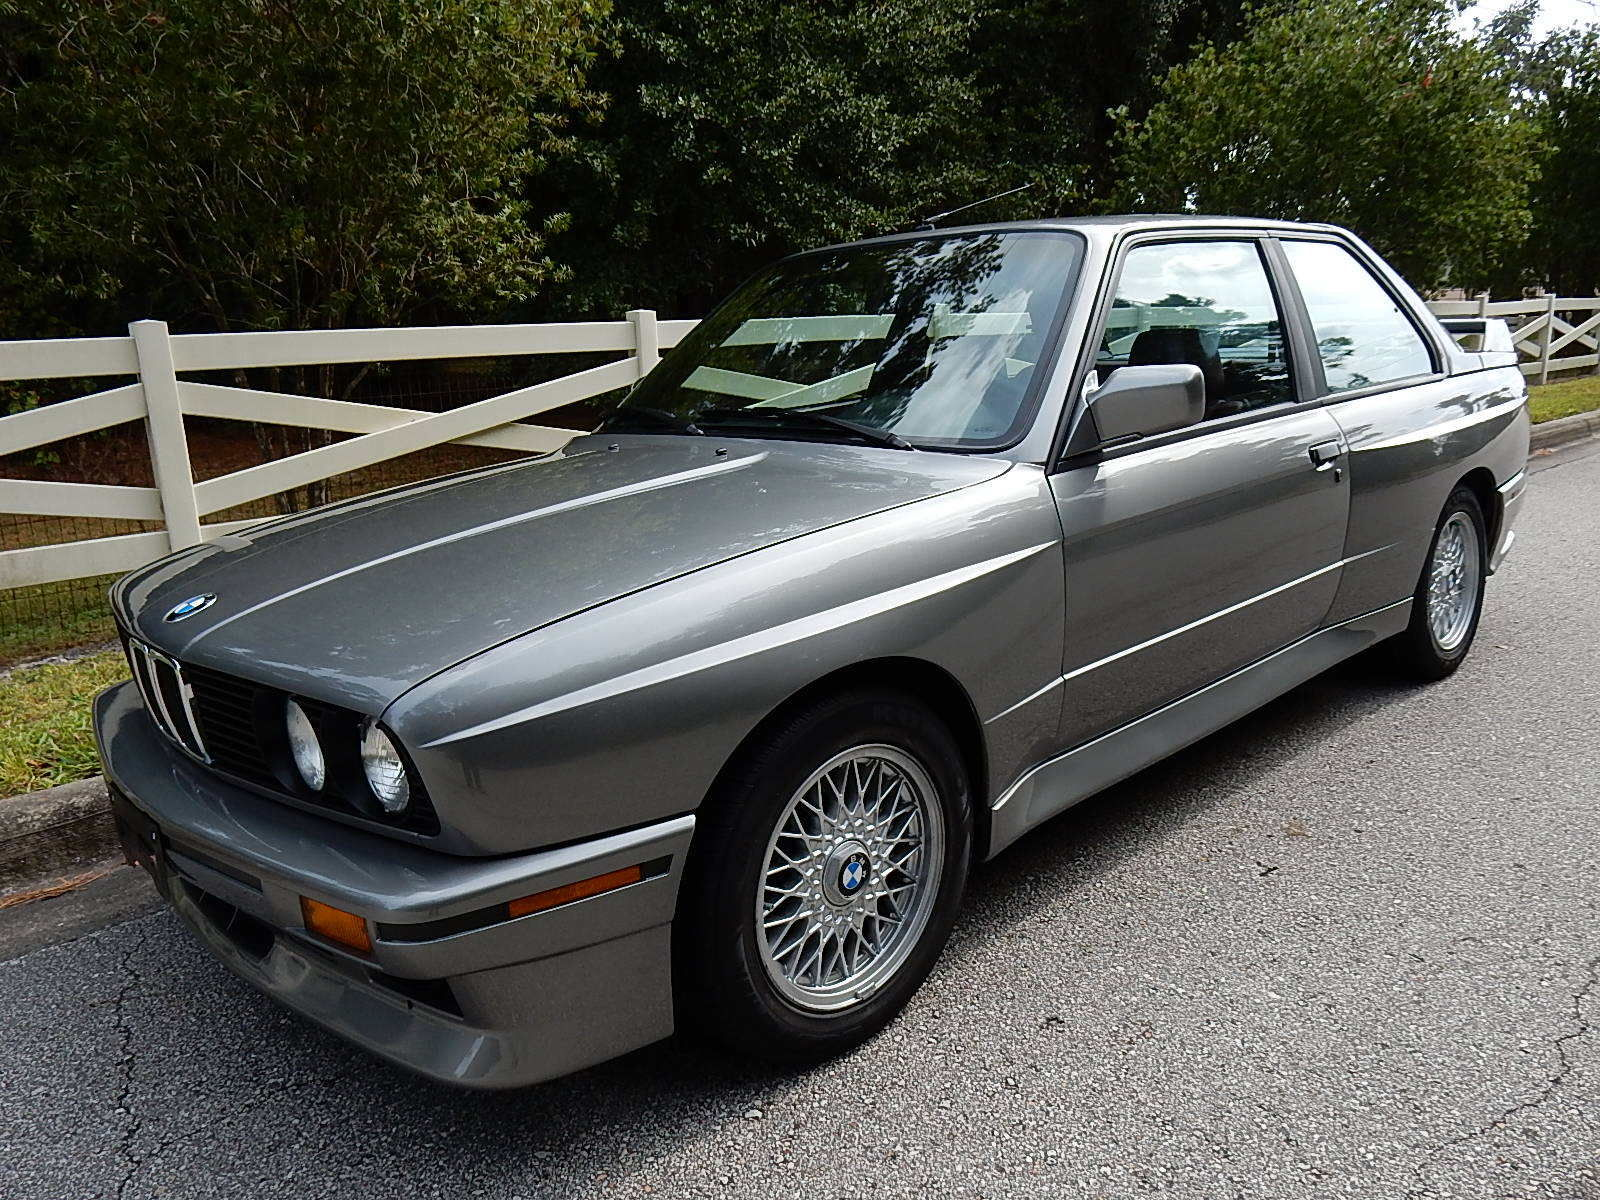 1988 bmw e30 m3 in lachssilber metallic with stunning. Black Bedroom Furniture Sets. Home Design Ideas